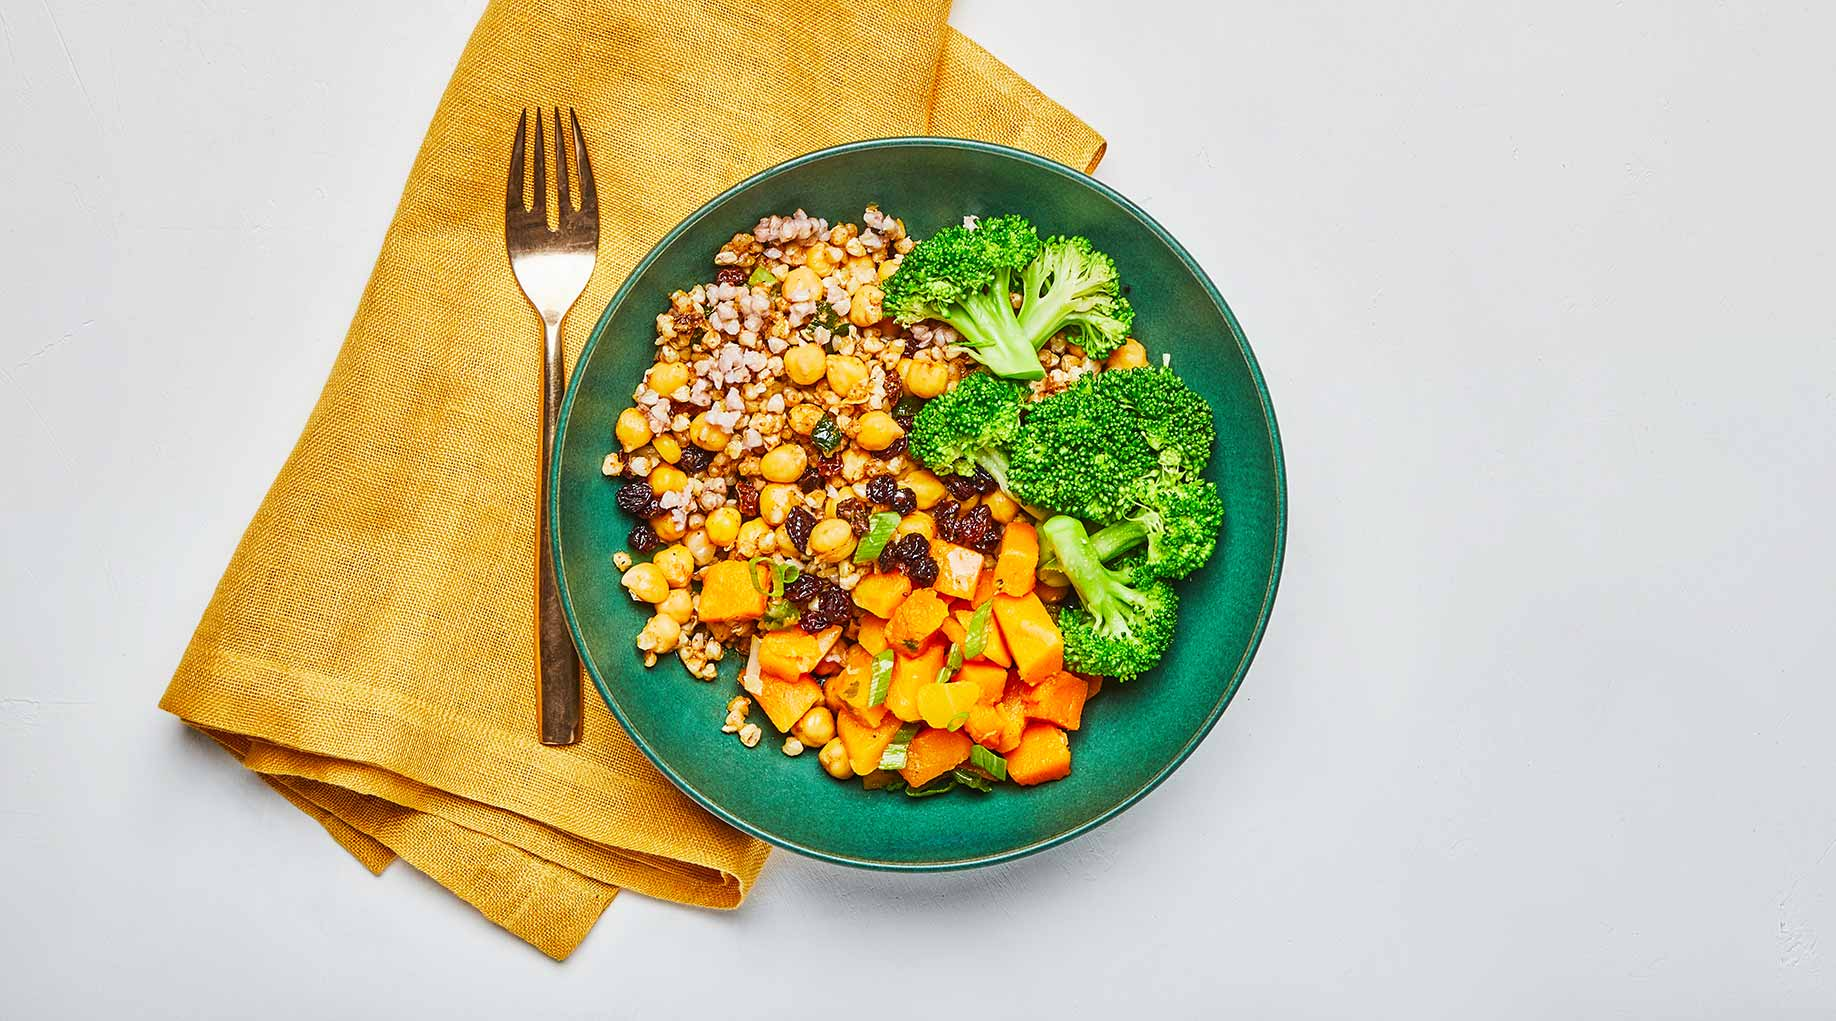 Moroccan Spiced Buckwheat Bowl